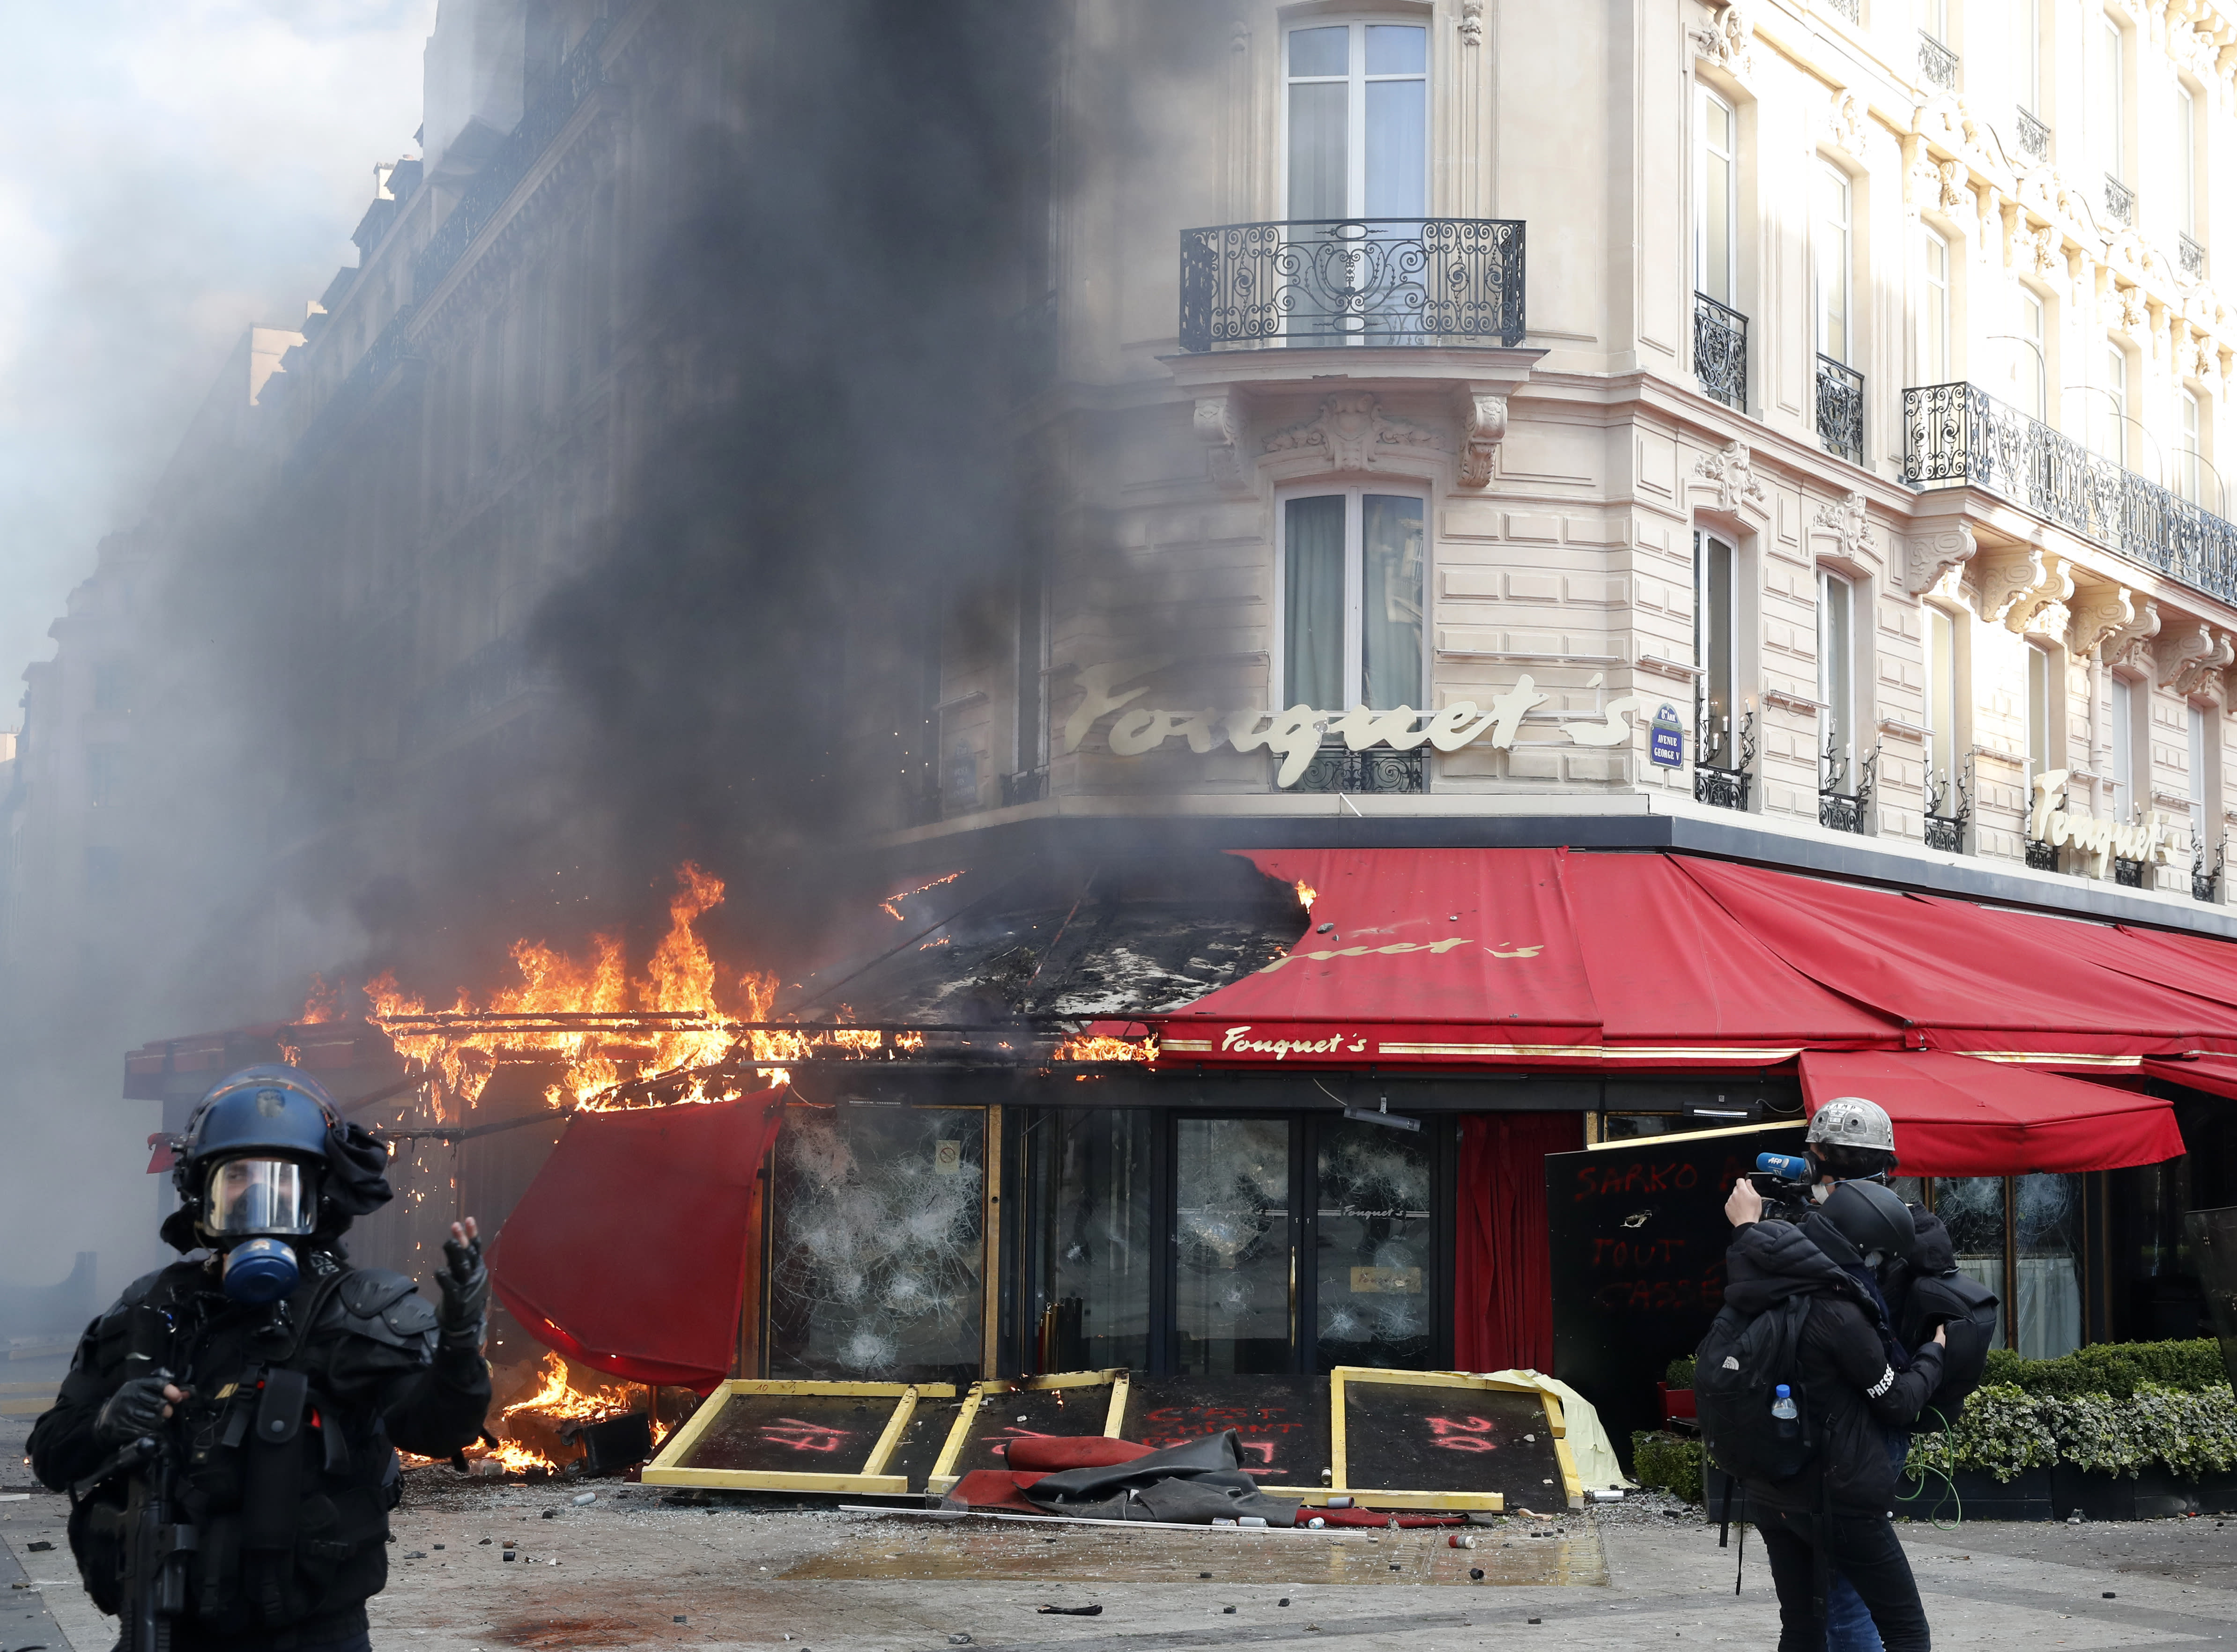 Paris famed restaurant Fouquet's burns on the Champs Elysees avenue during a yellow vests demonstration Saturday, March 16, 2019 in Paris. Paris police say more than 100 people have been arrested amid rioting in the French capital by yellow vest protesters and clashes with police. They set life-threatening fires, smashed up luxury stores and clashed with police firing tear gas and water cannon (AP Photo/Christophe Ena)